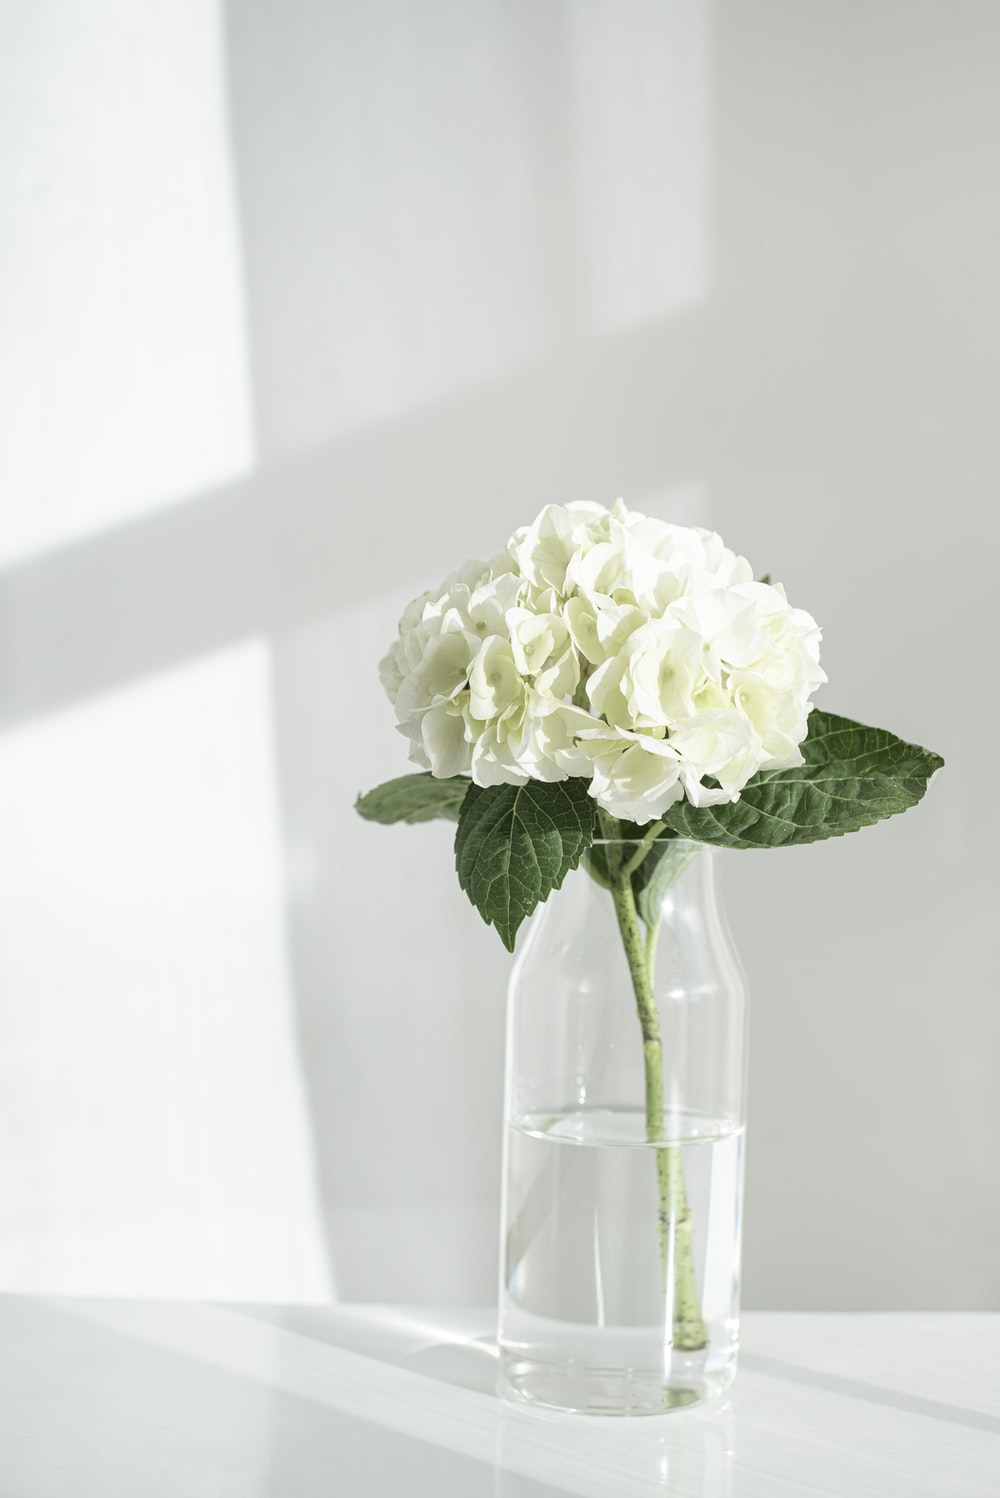 white rose in clear glass vase